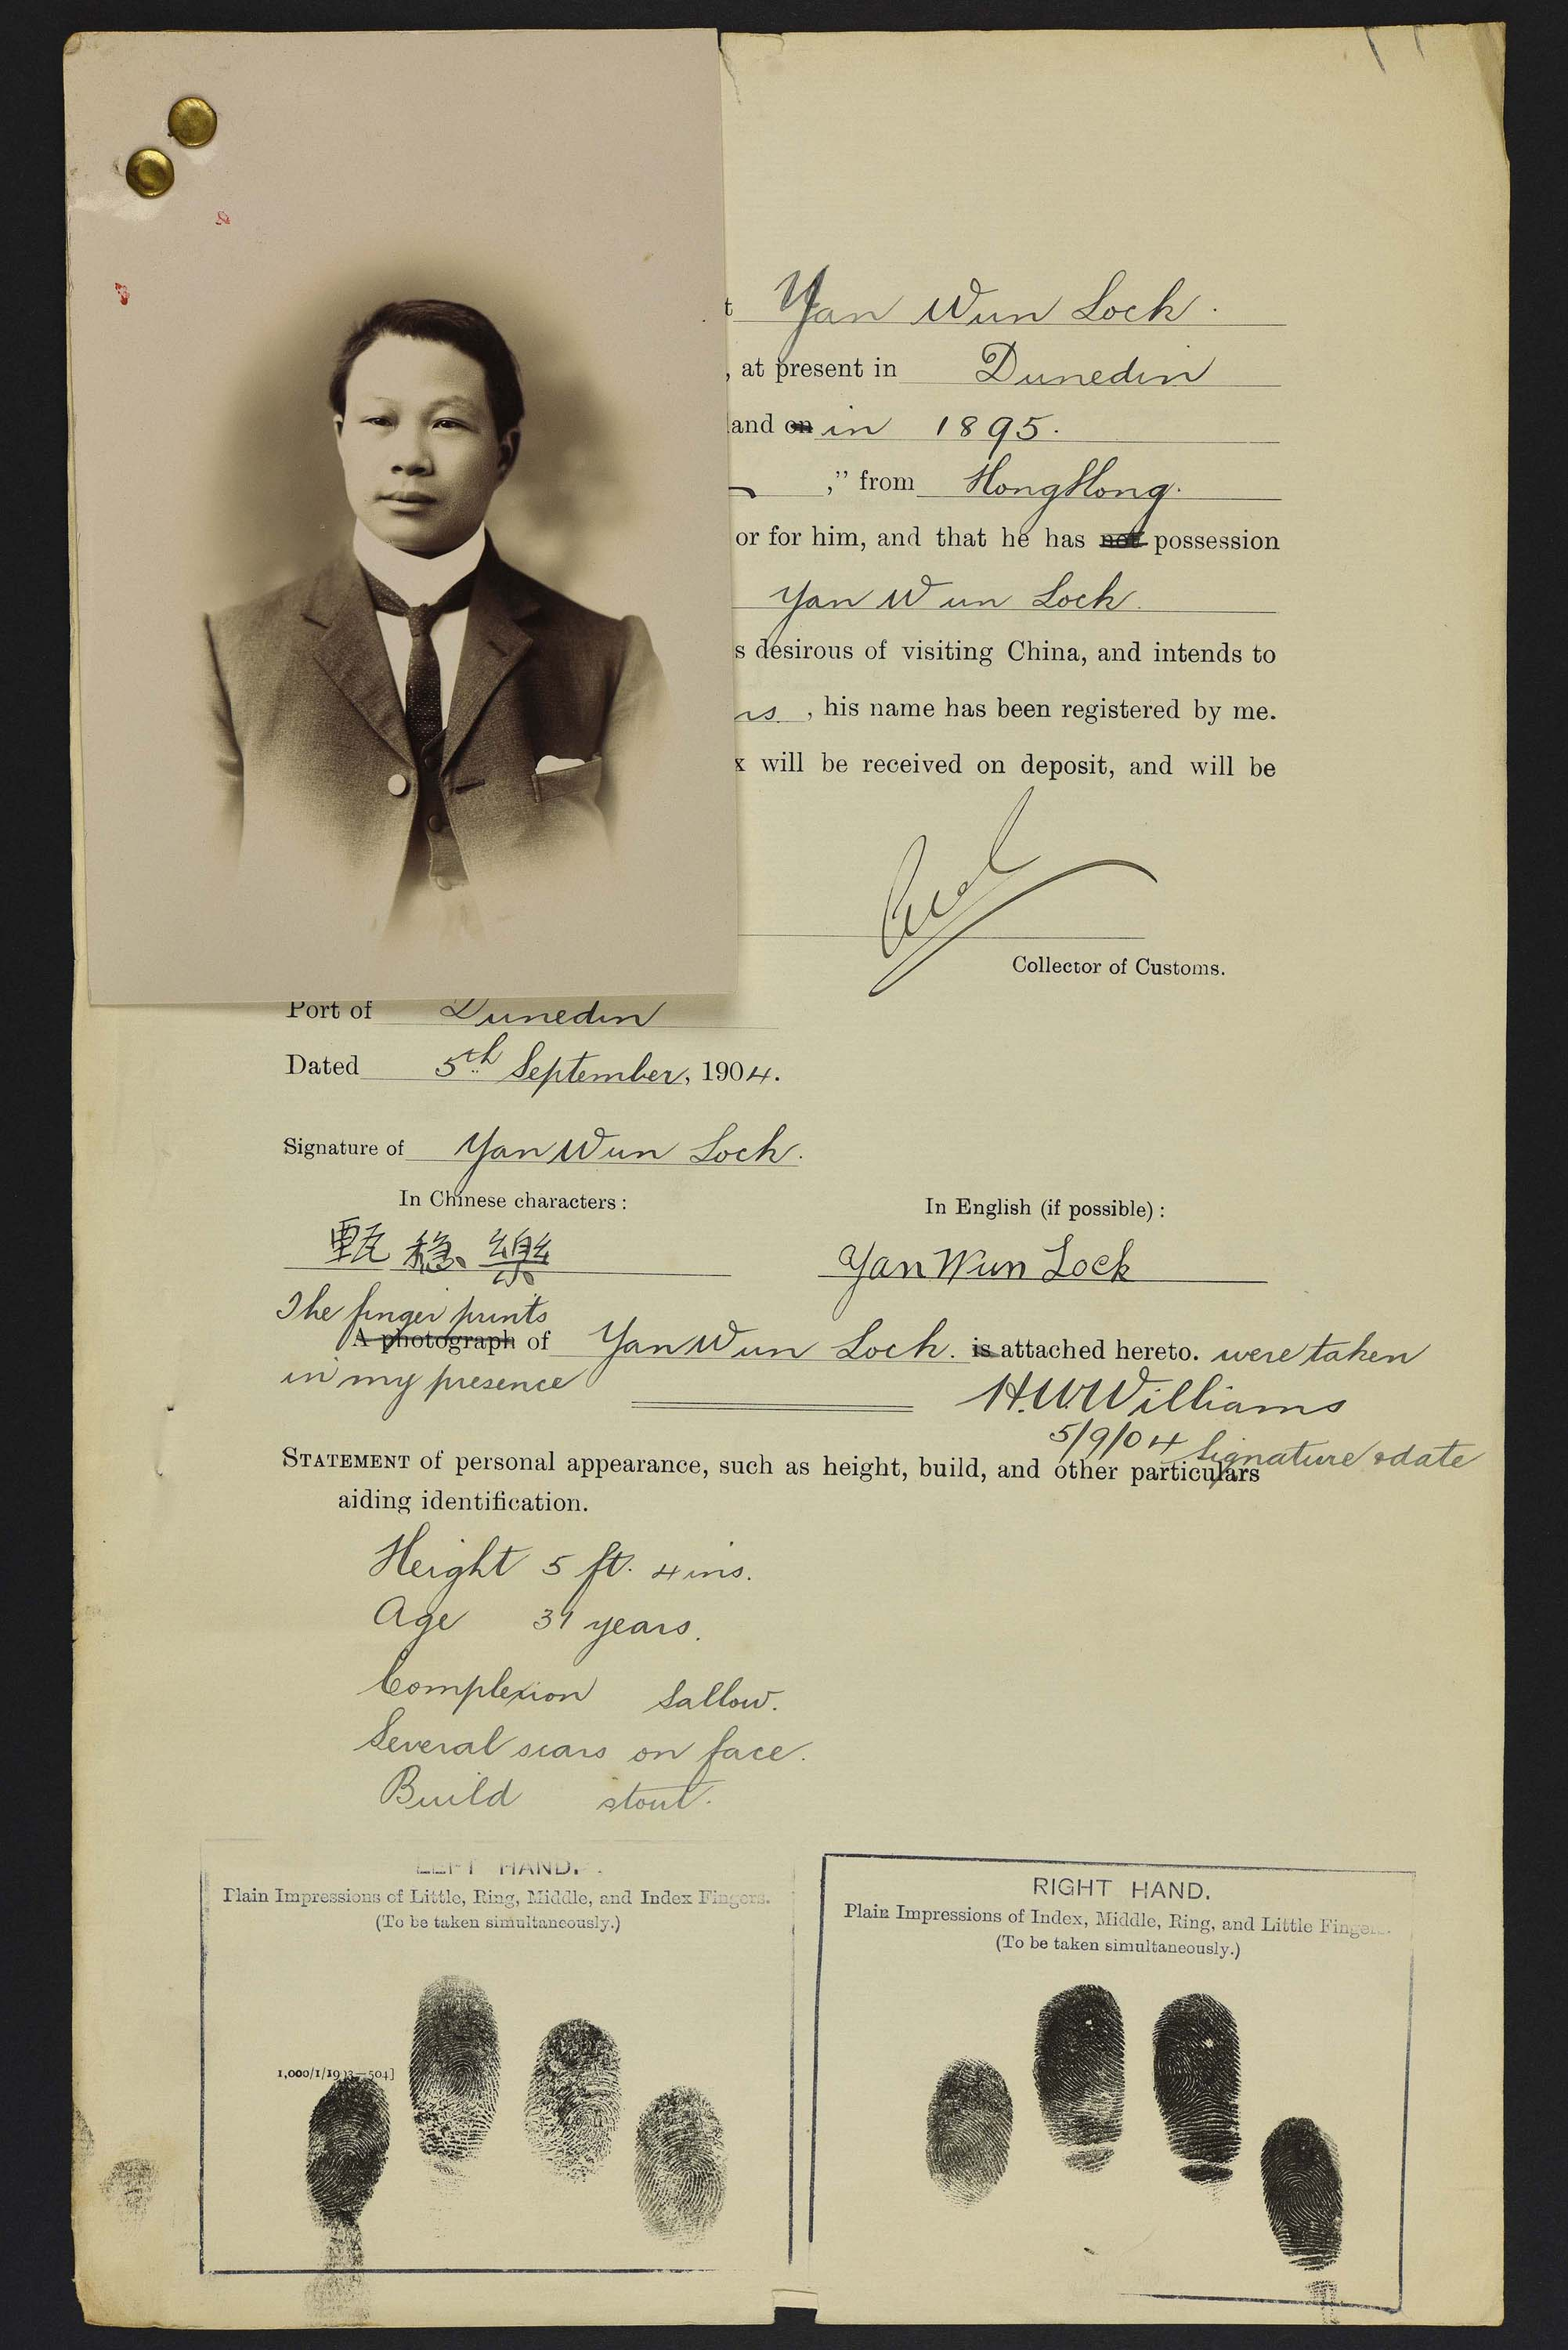 Sepia photo portrait of a Chinese man pinned to his immigration papers